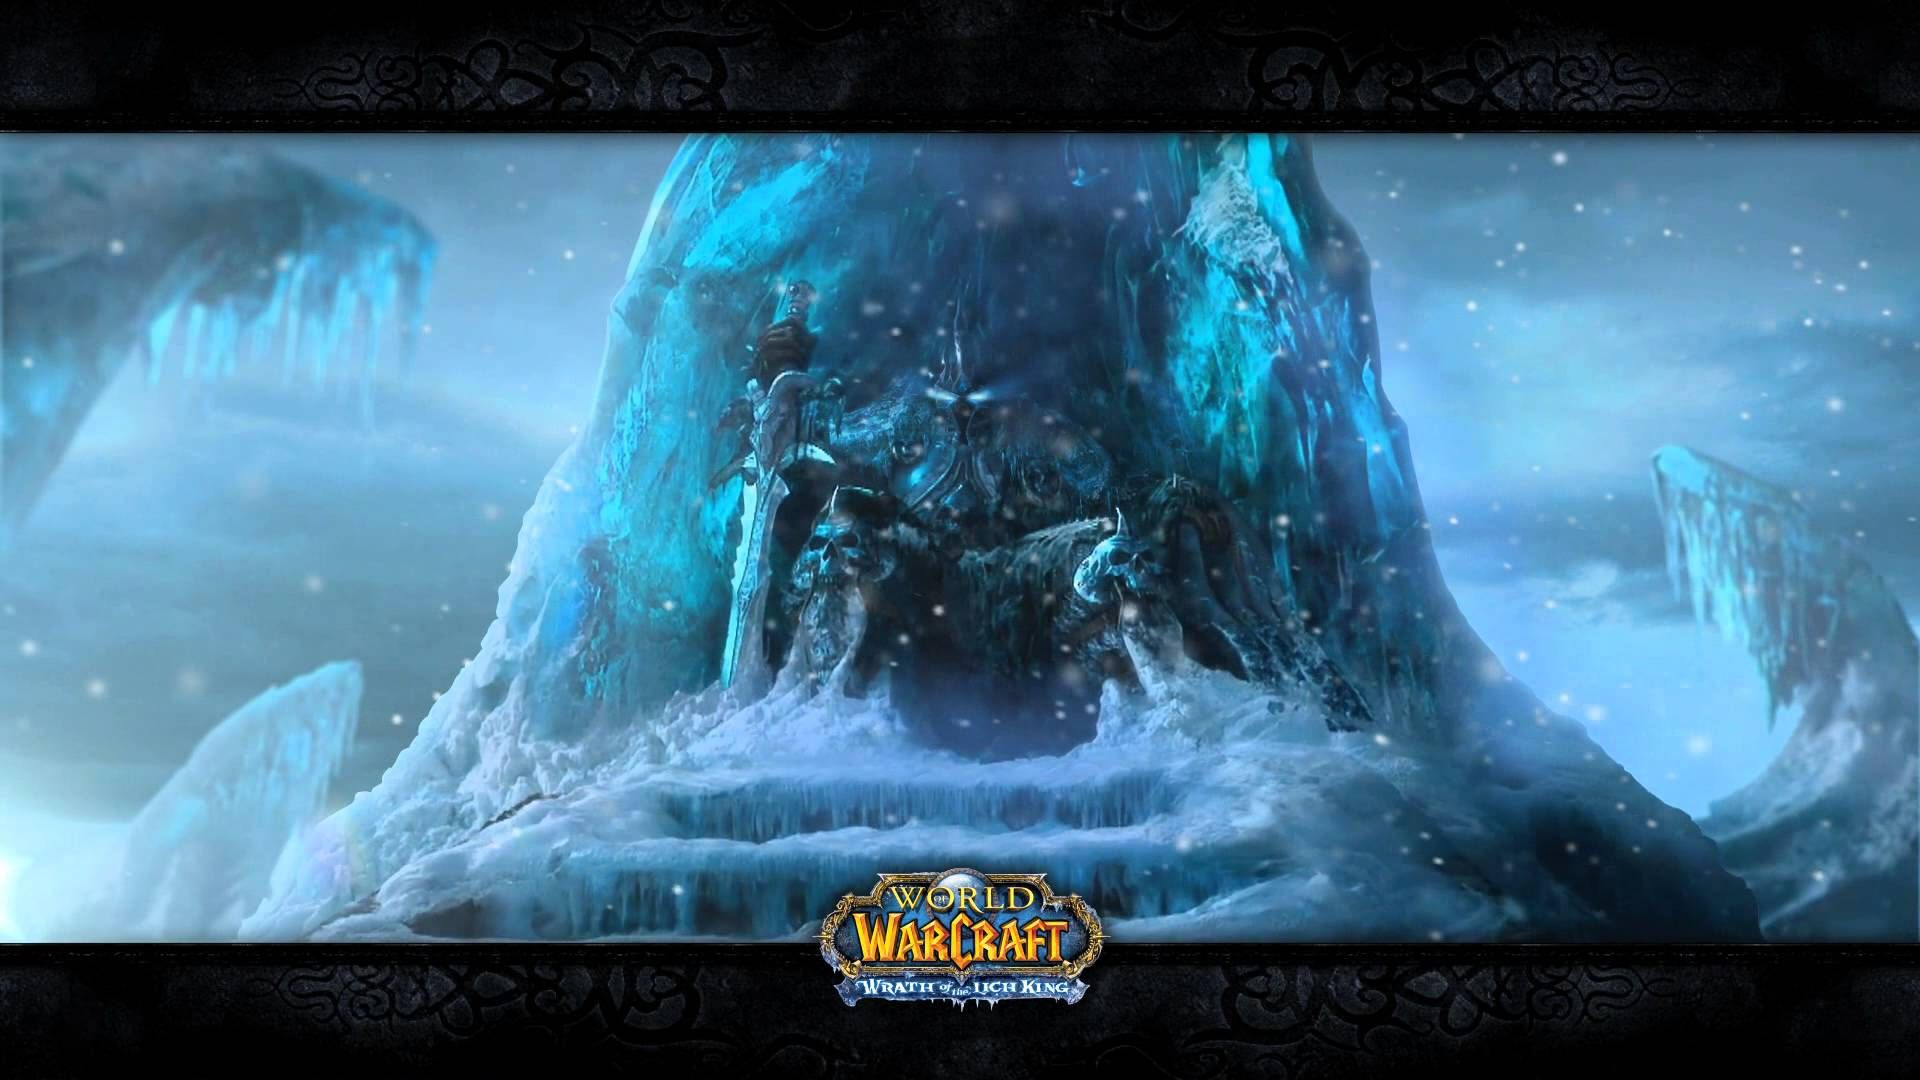 Found This Cool Animated Lich King Wallpaper Worldofwarcraft